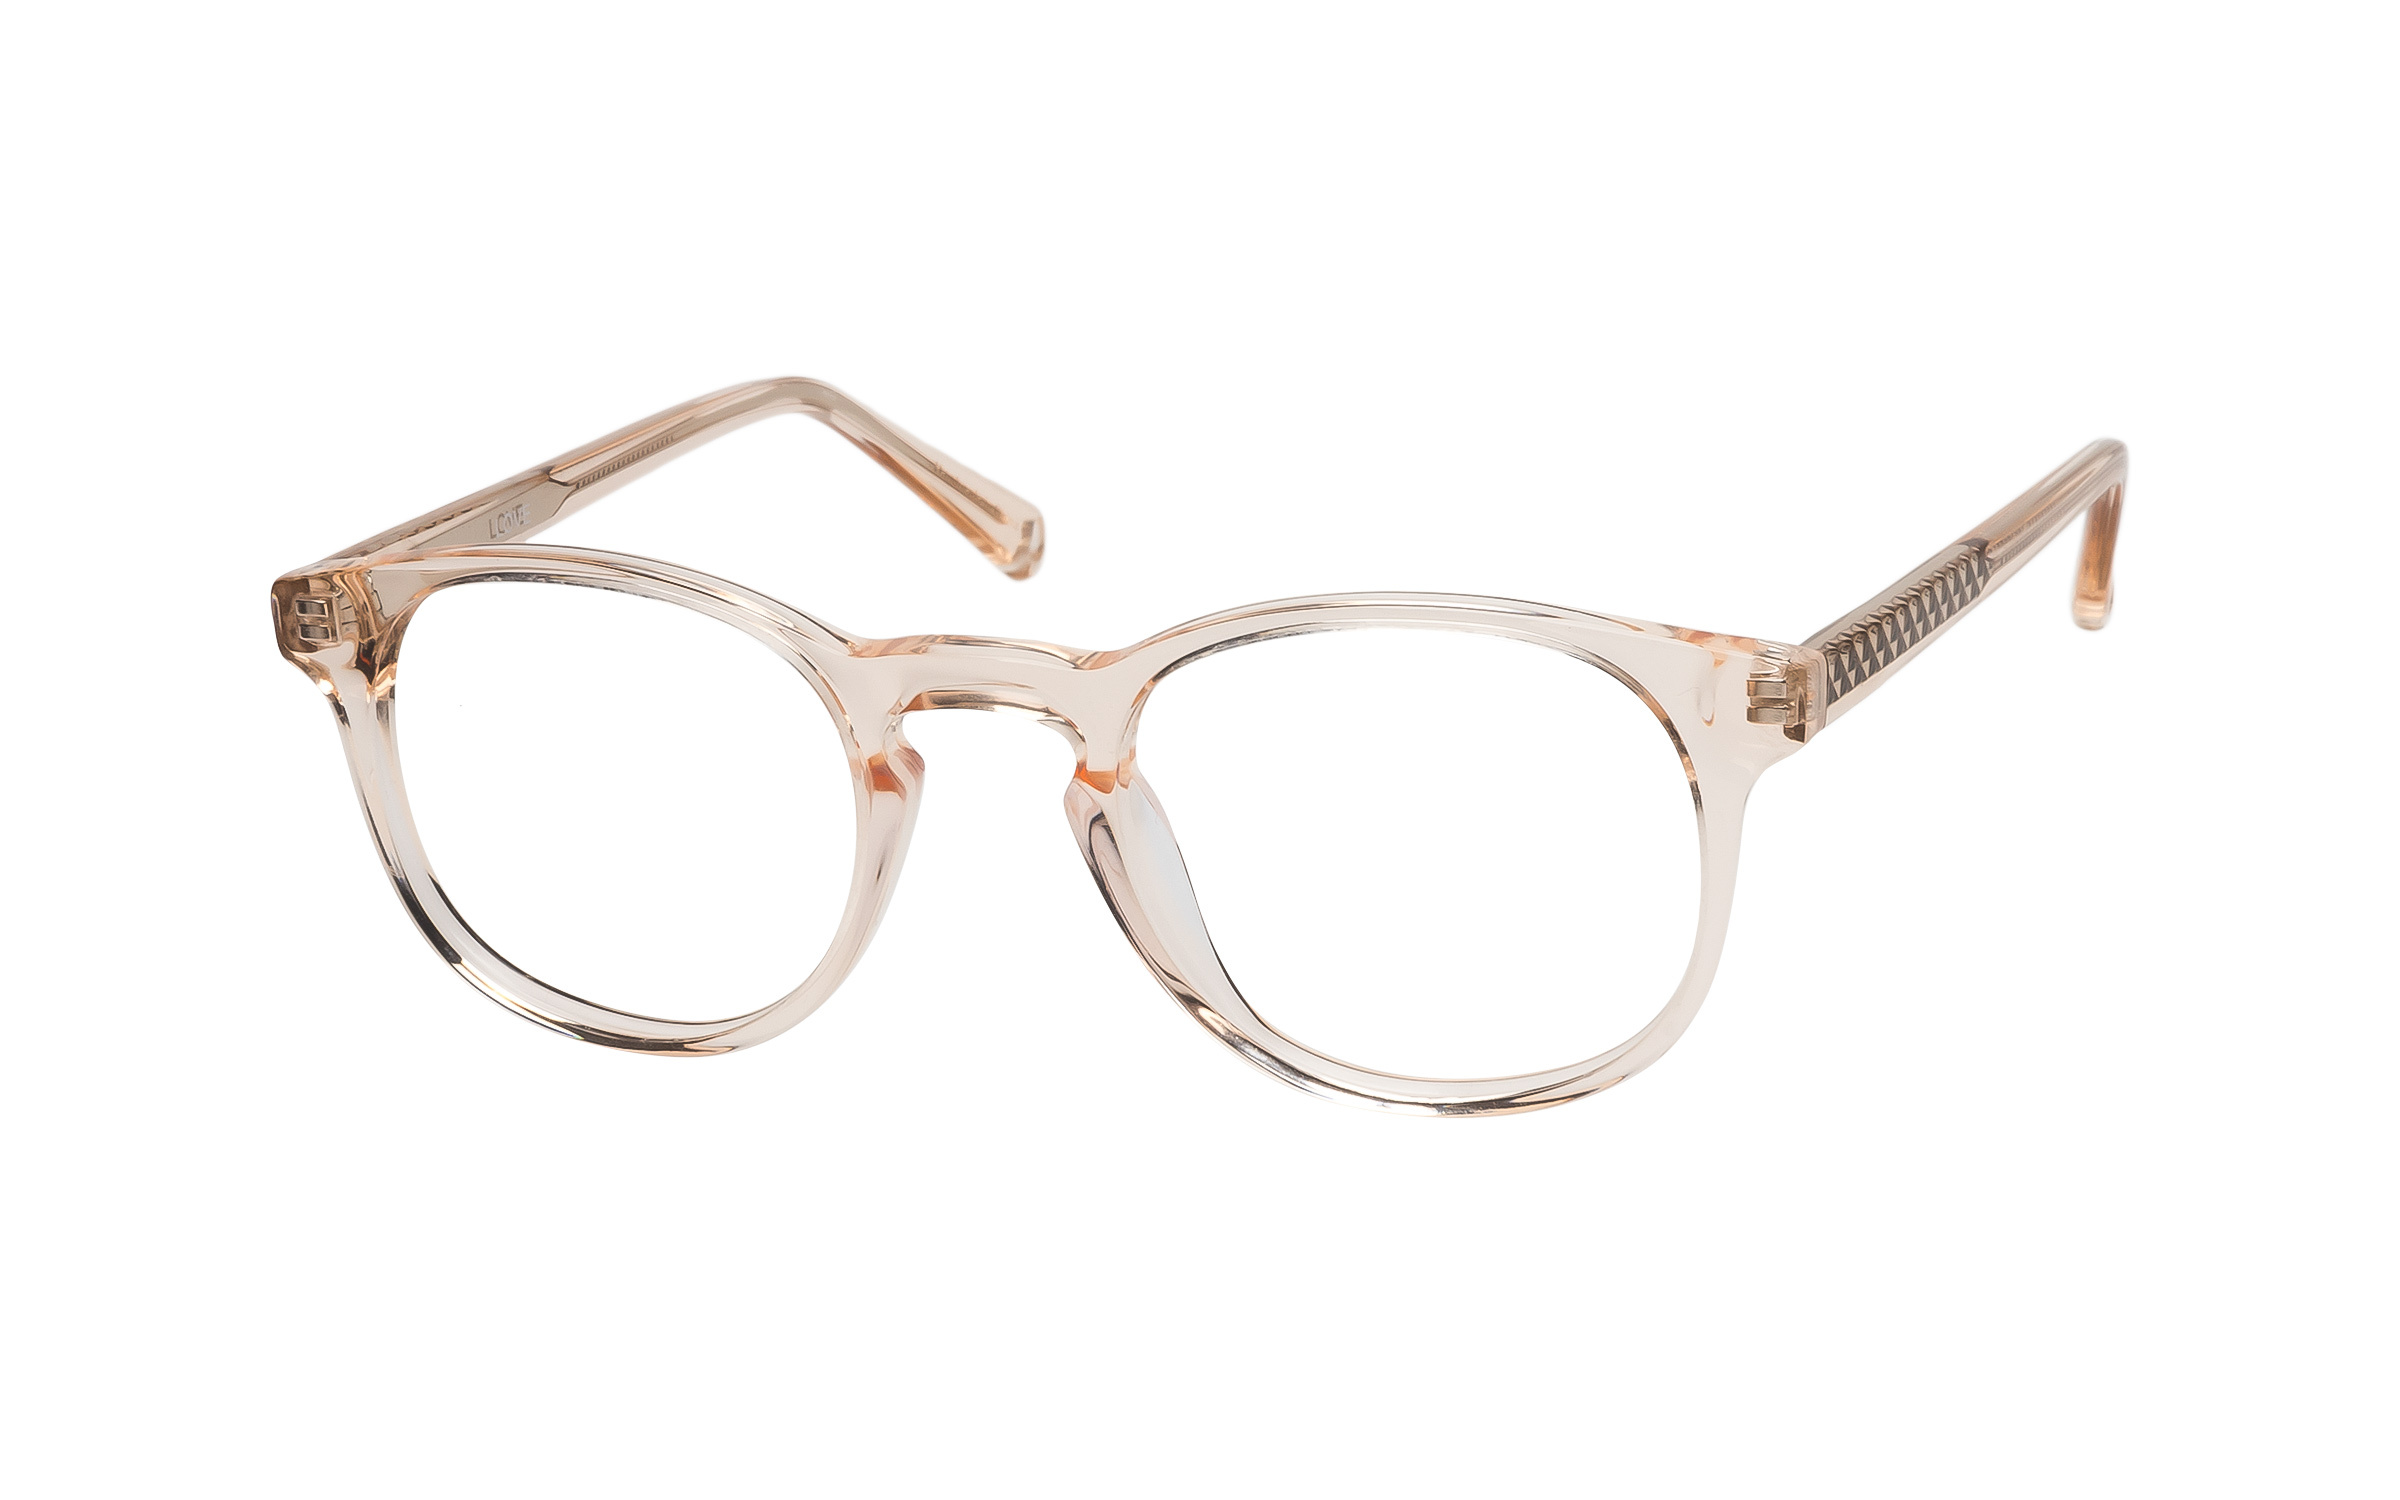 Women's Vintage Glasses Pink/Clear/Beige Love Online Clearly